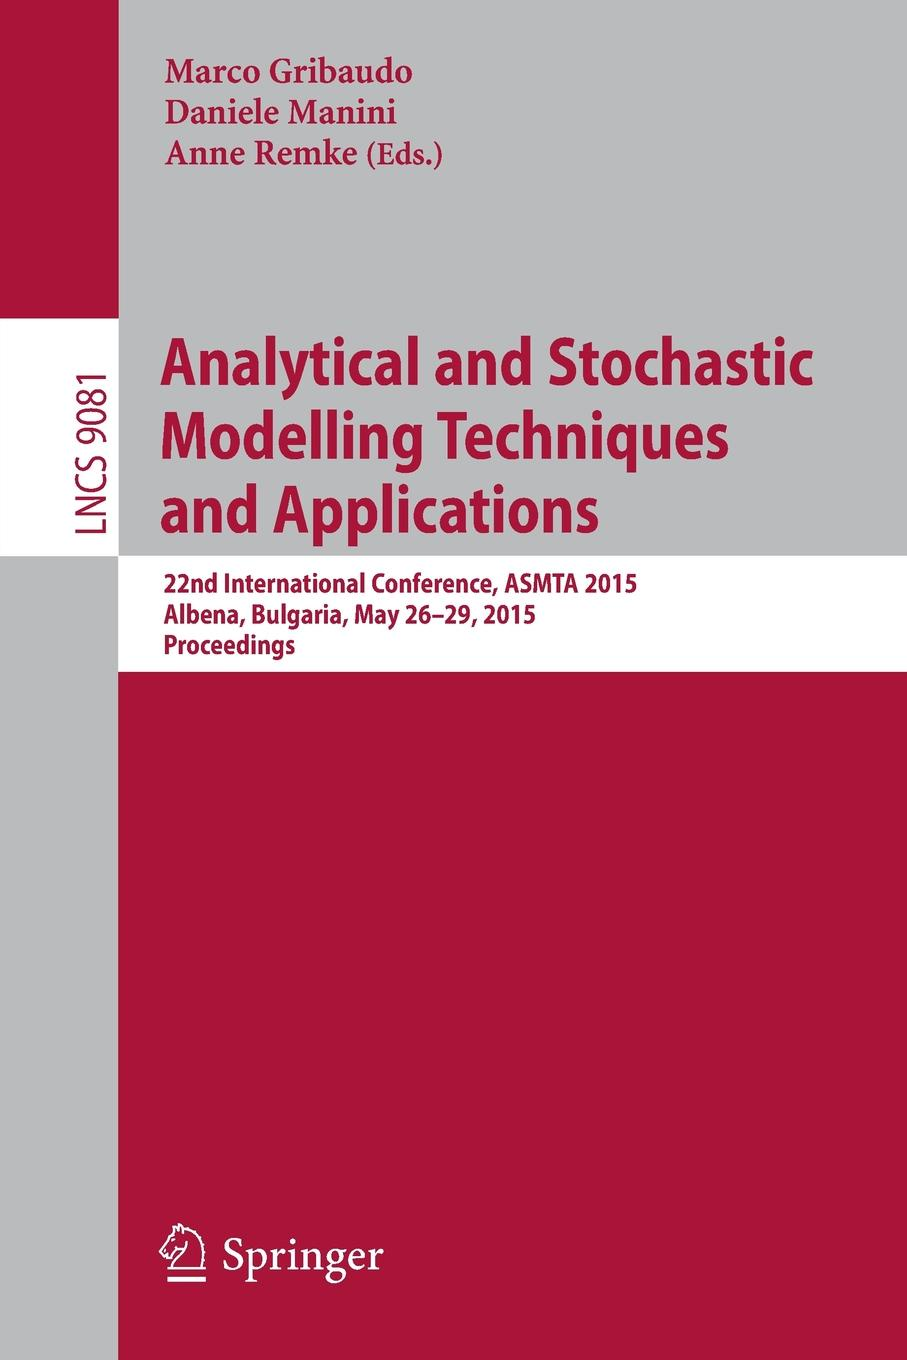 лучшая цена Analytical and Stochastic Modelling Techniques and Applications. 22nd International Conference, ASMTA 2015, Albena, Bulgaria, May 26-29, 2015. Proceedings